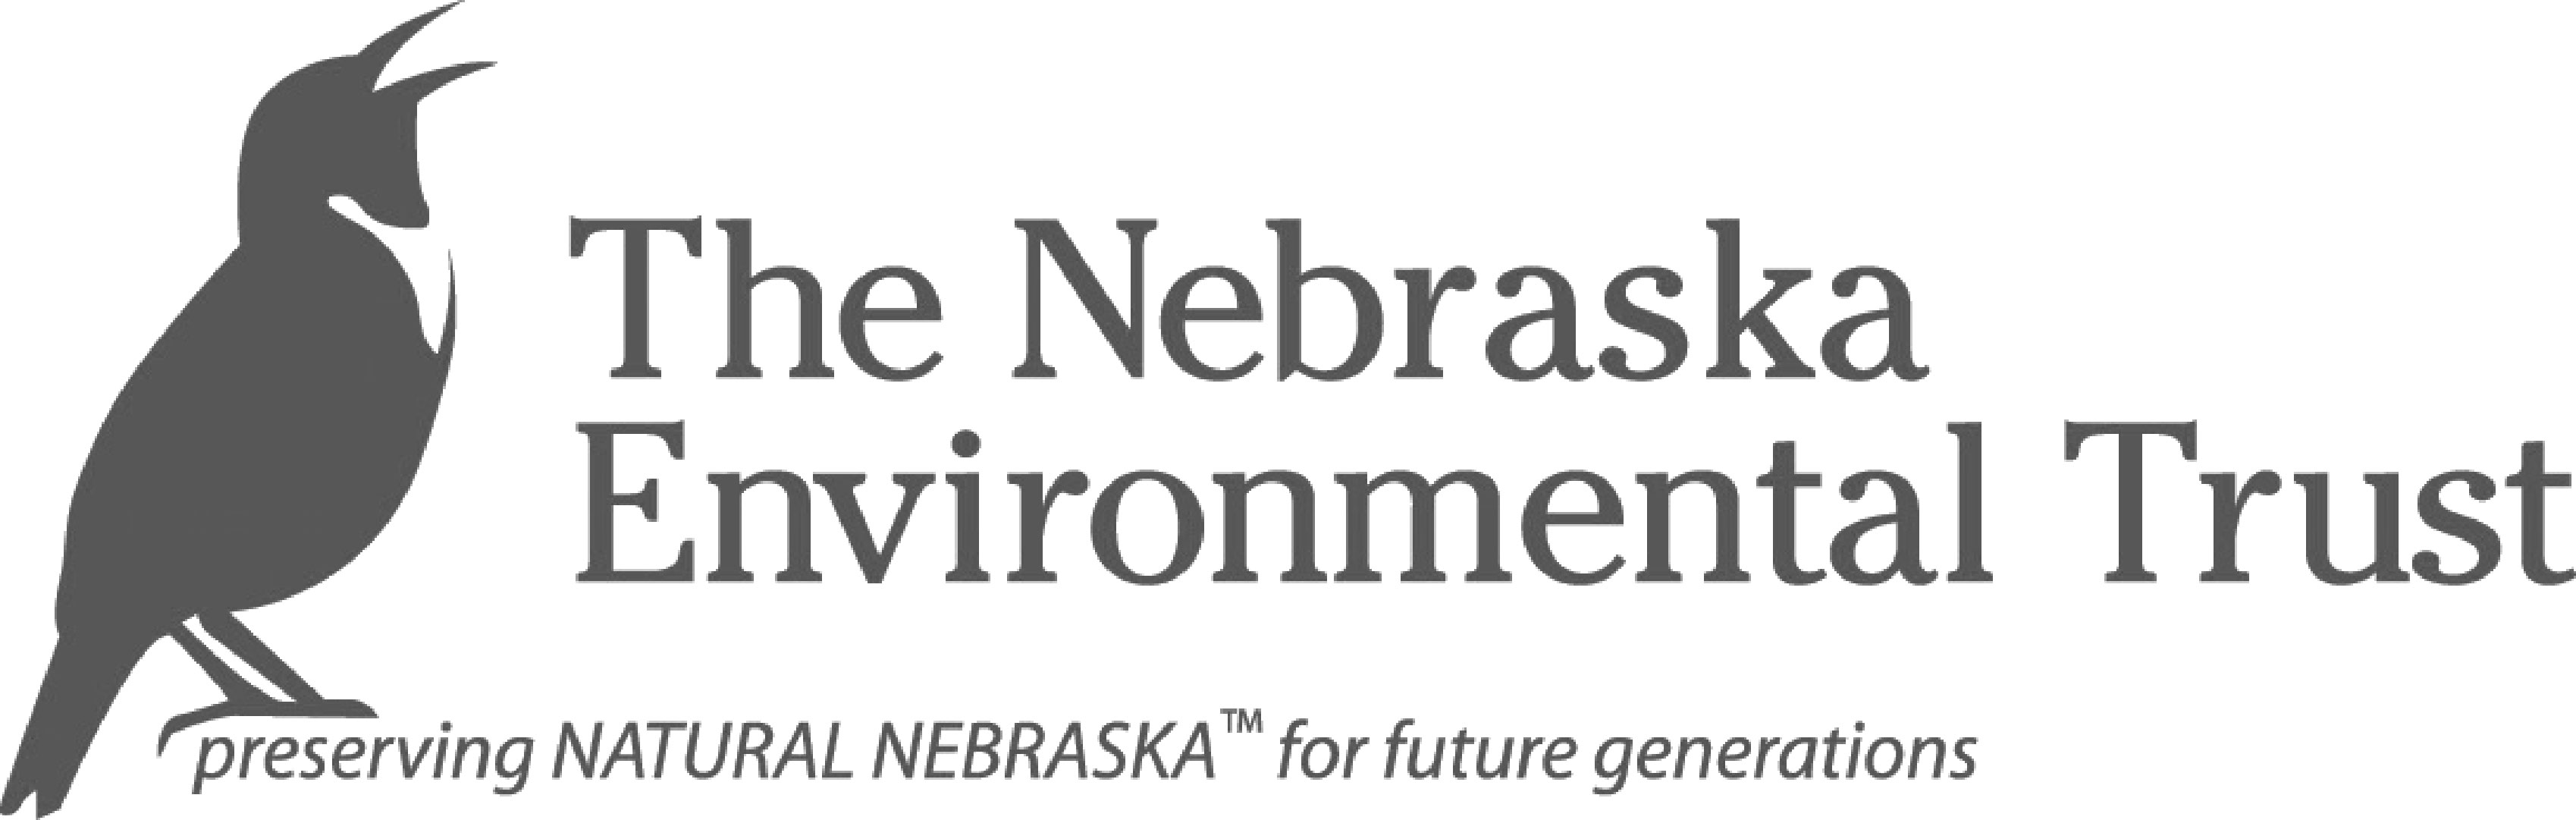 Funder: The Nebraska Environmental Trust